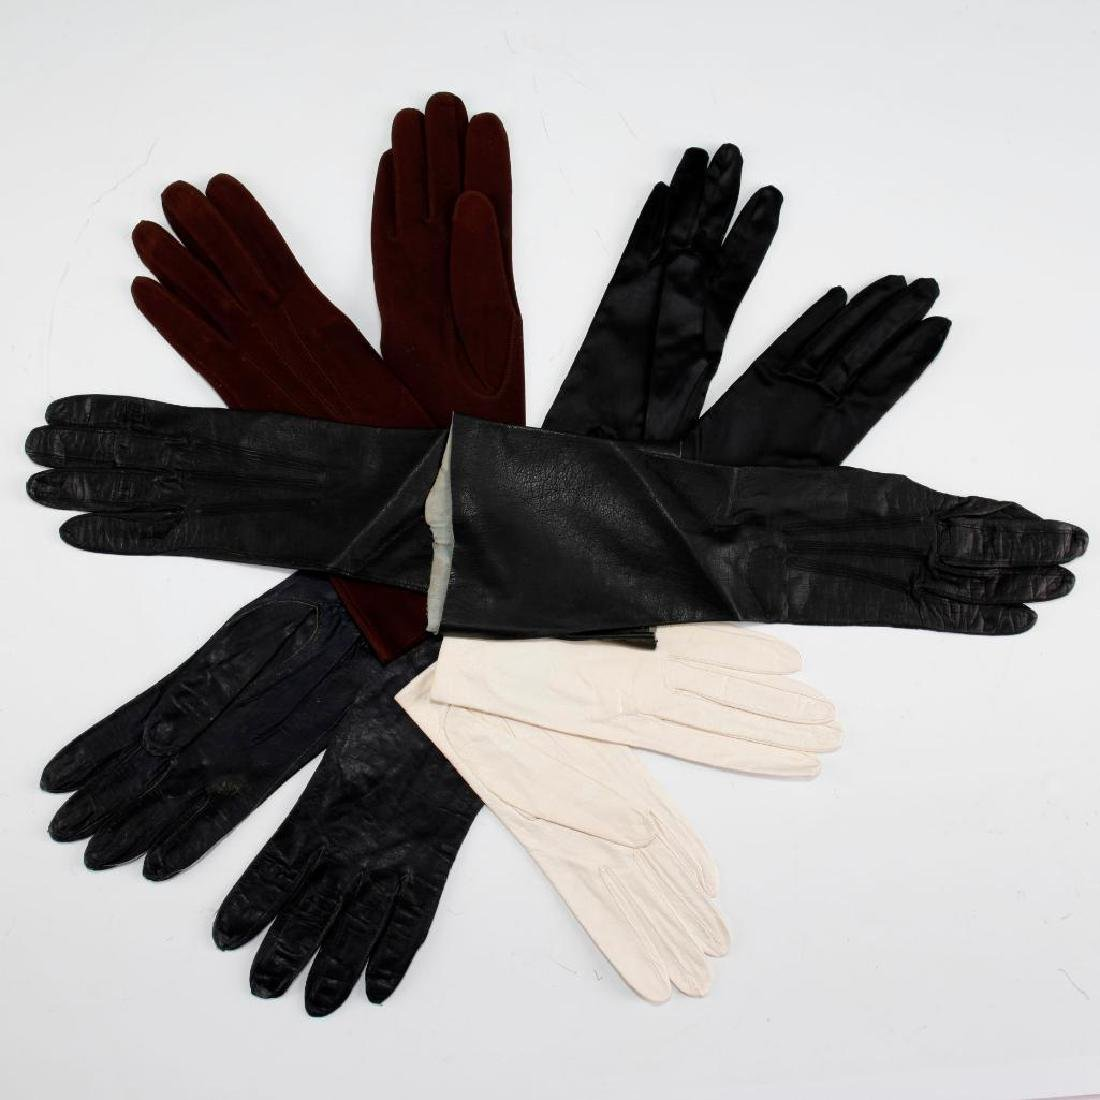 5 PAIRS OF VINTAGE ASSORTED LADIES GLOVES - 2